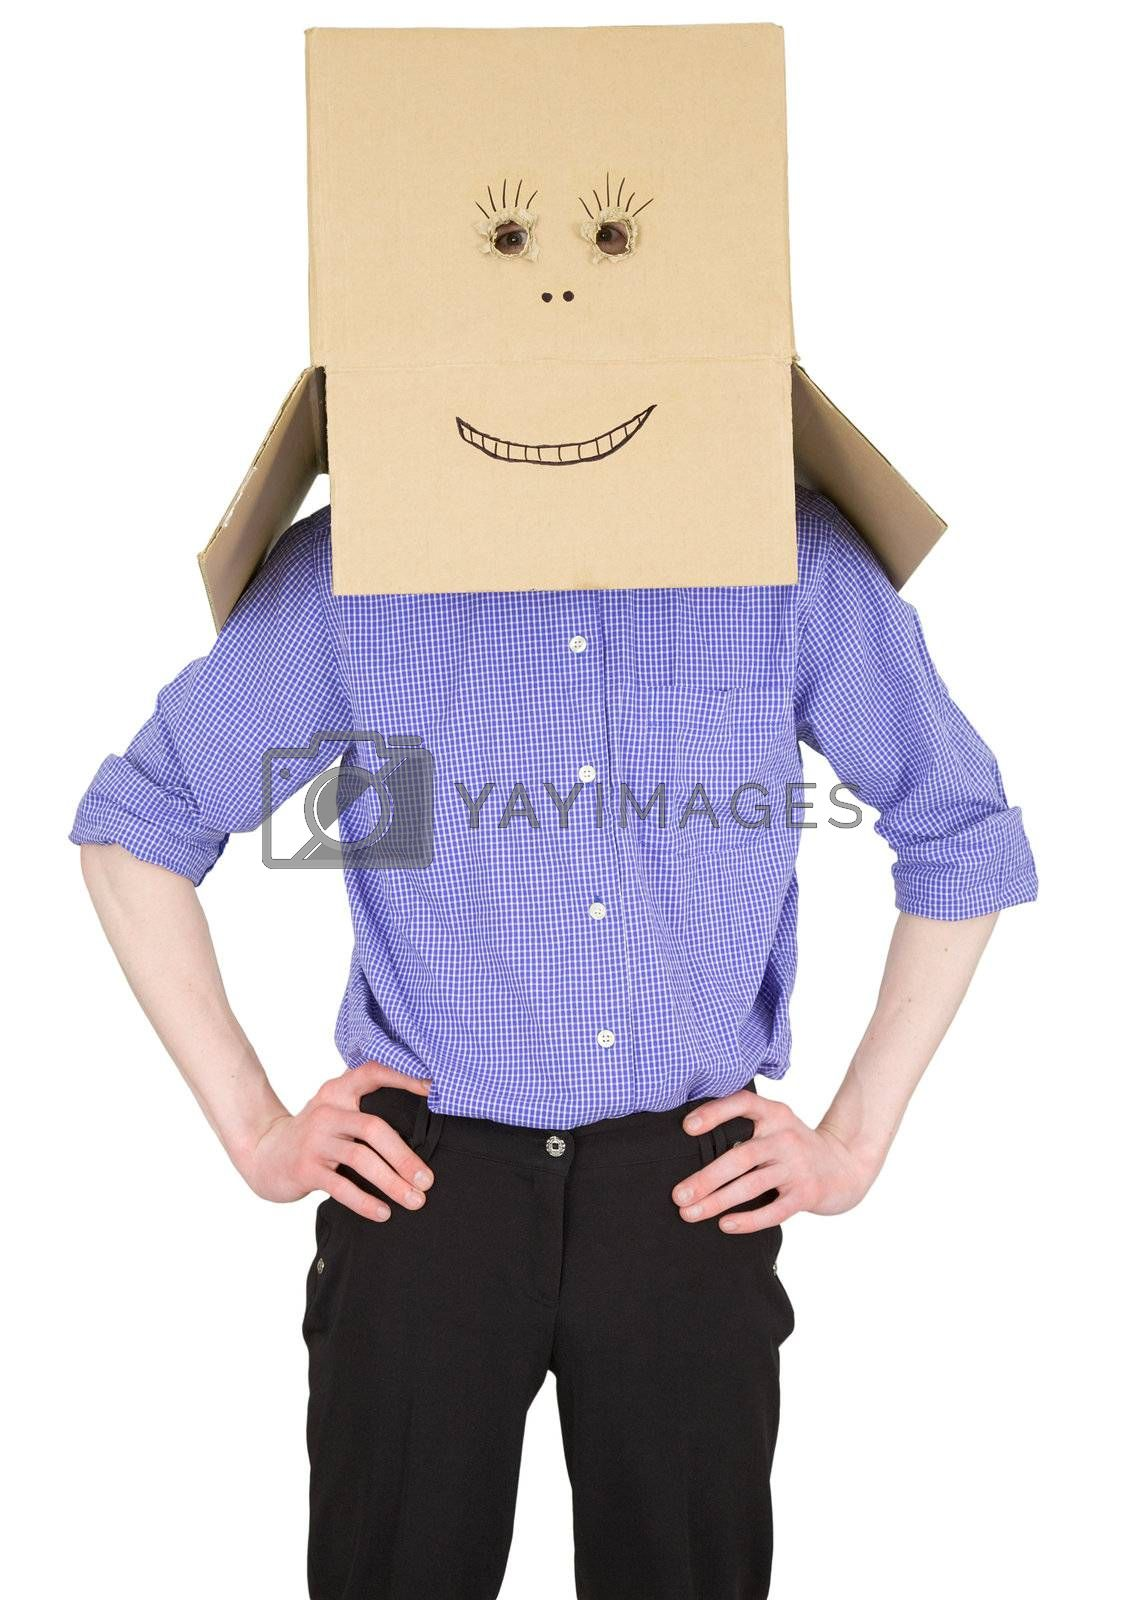 Royalty free image of Man with carton box instead of head by pzaxe